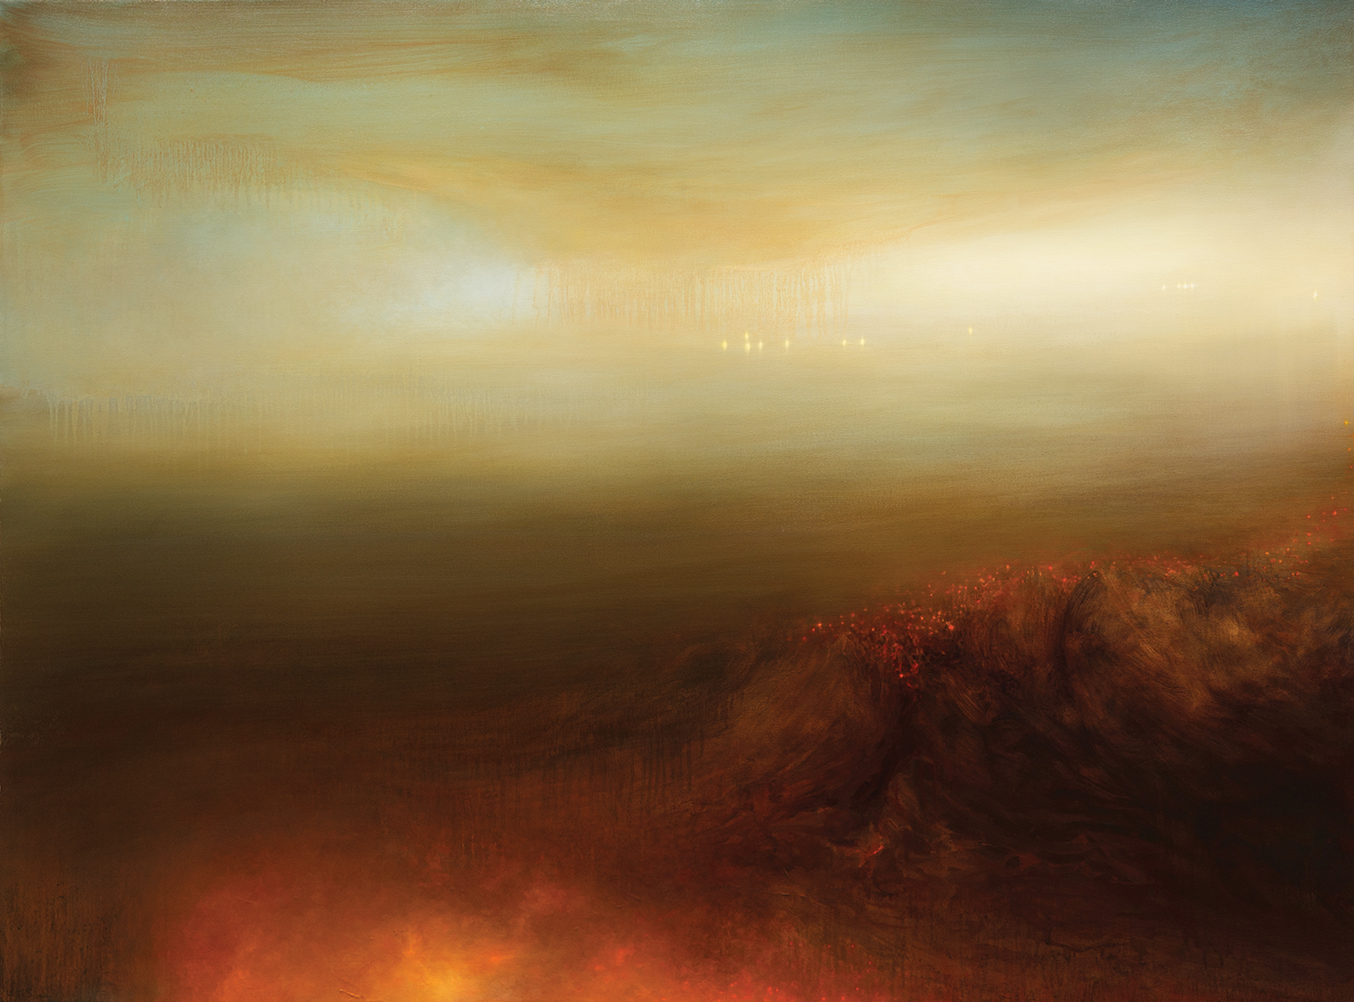 EBB  2012 OIL AND VARNISH ON CANVAS 52 X 70 INCHES